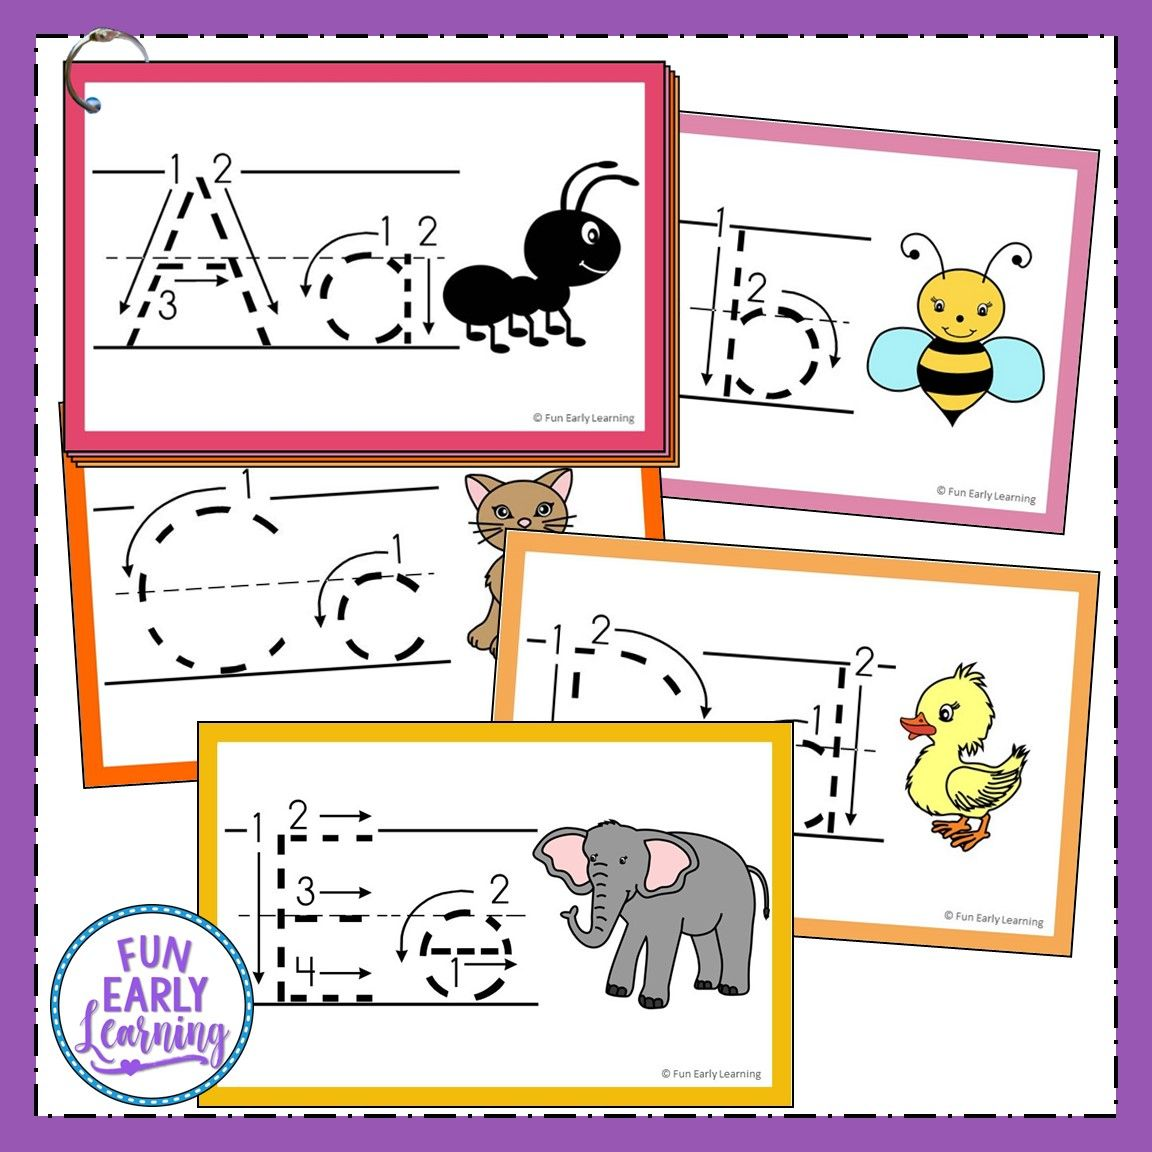 Teach Letters And Writing With Our Free Alphabet Animal Tracing Cards Alphabet Activities Preschool Tracing Letters Preschool Alphabet Preschool [ 1152 x 1152 Pixel ]